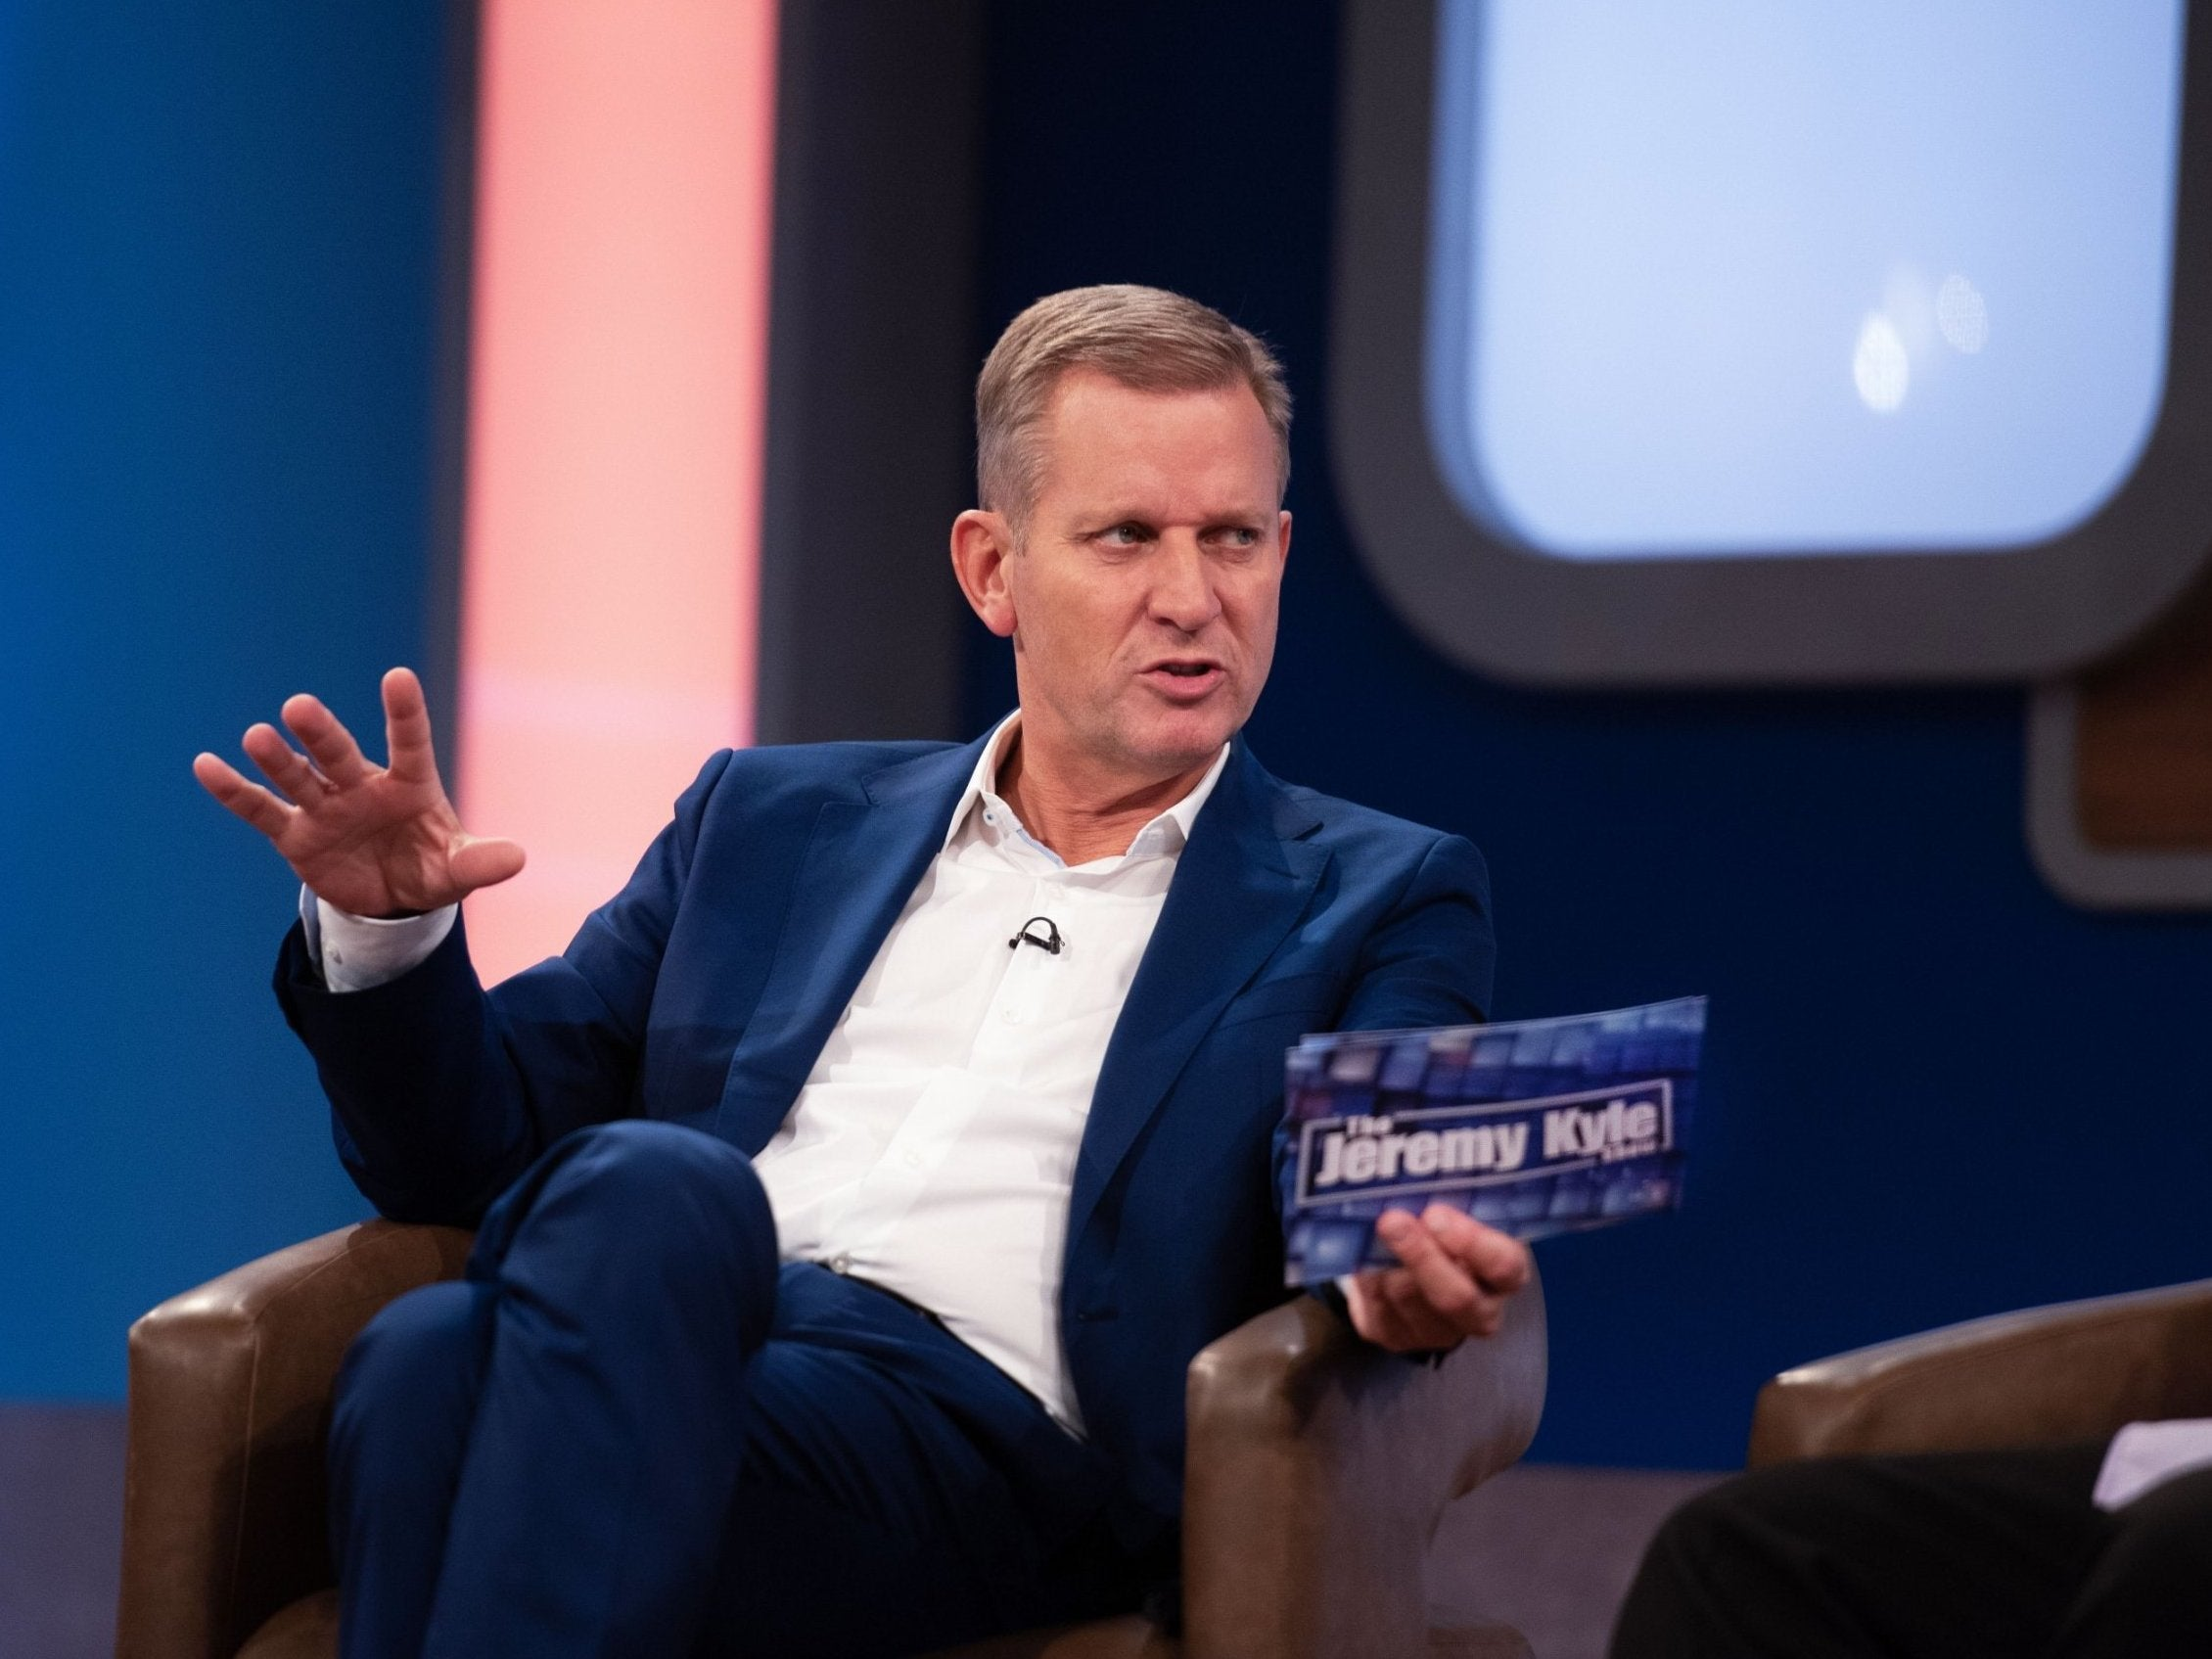 Jeremy Kyle Show cancelled permanently by ITV after death of guest